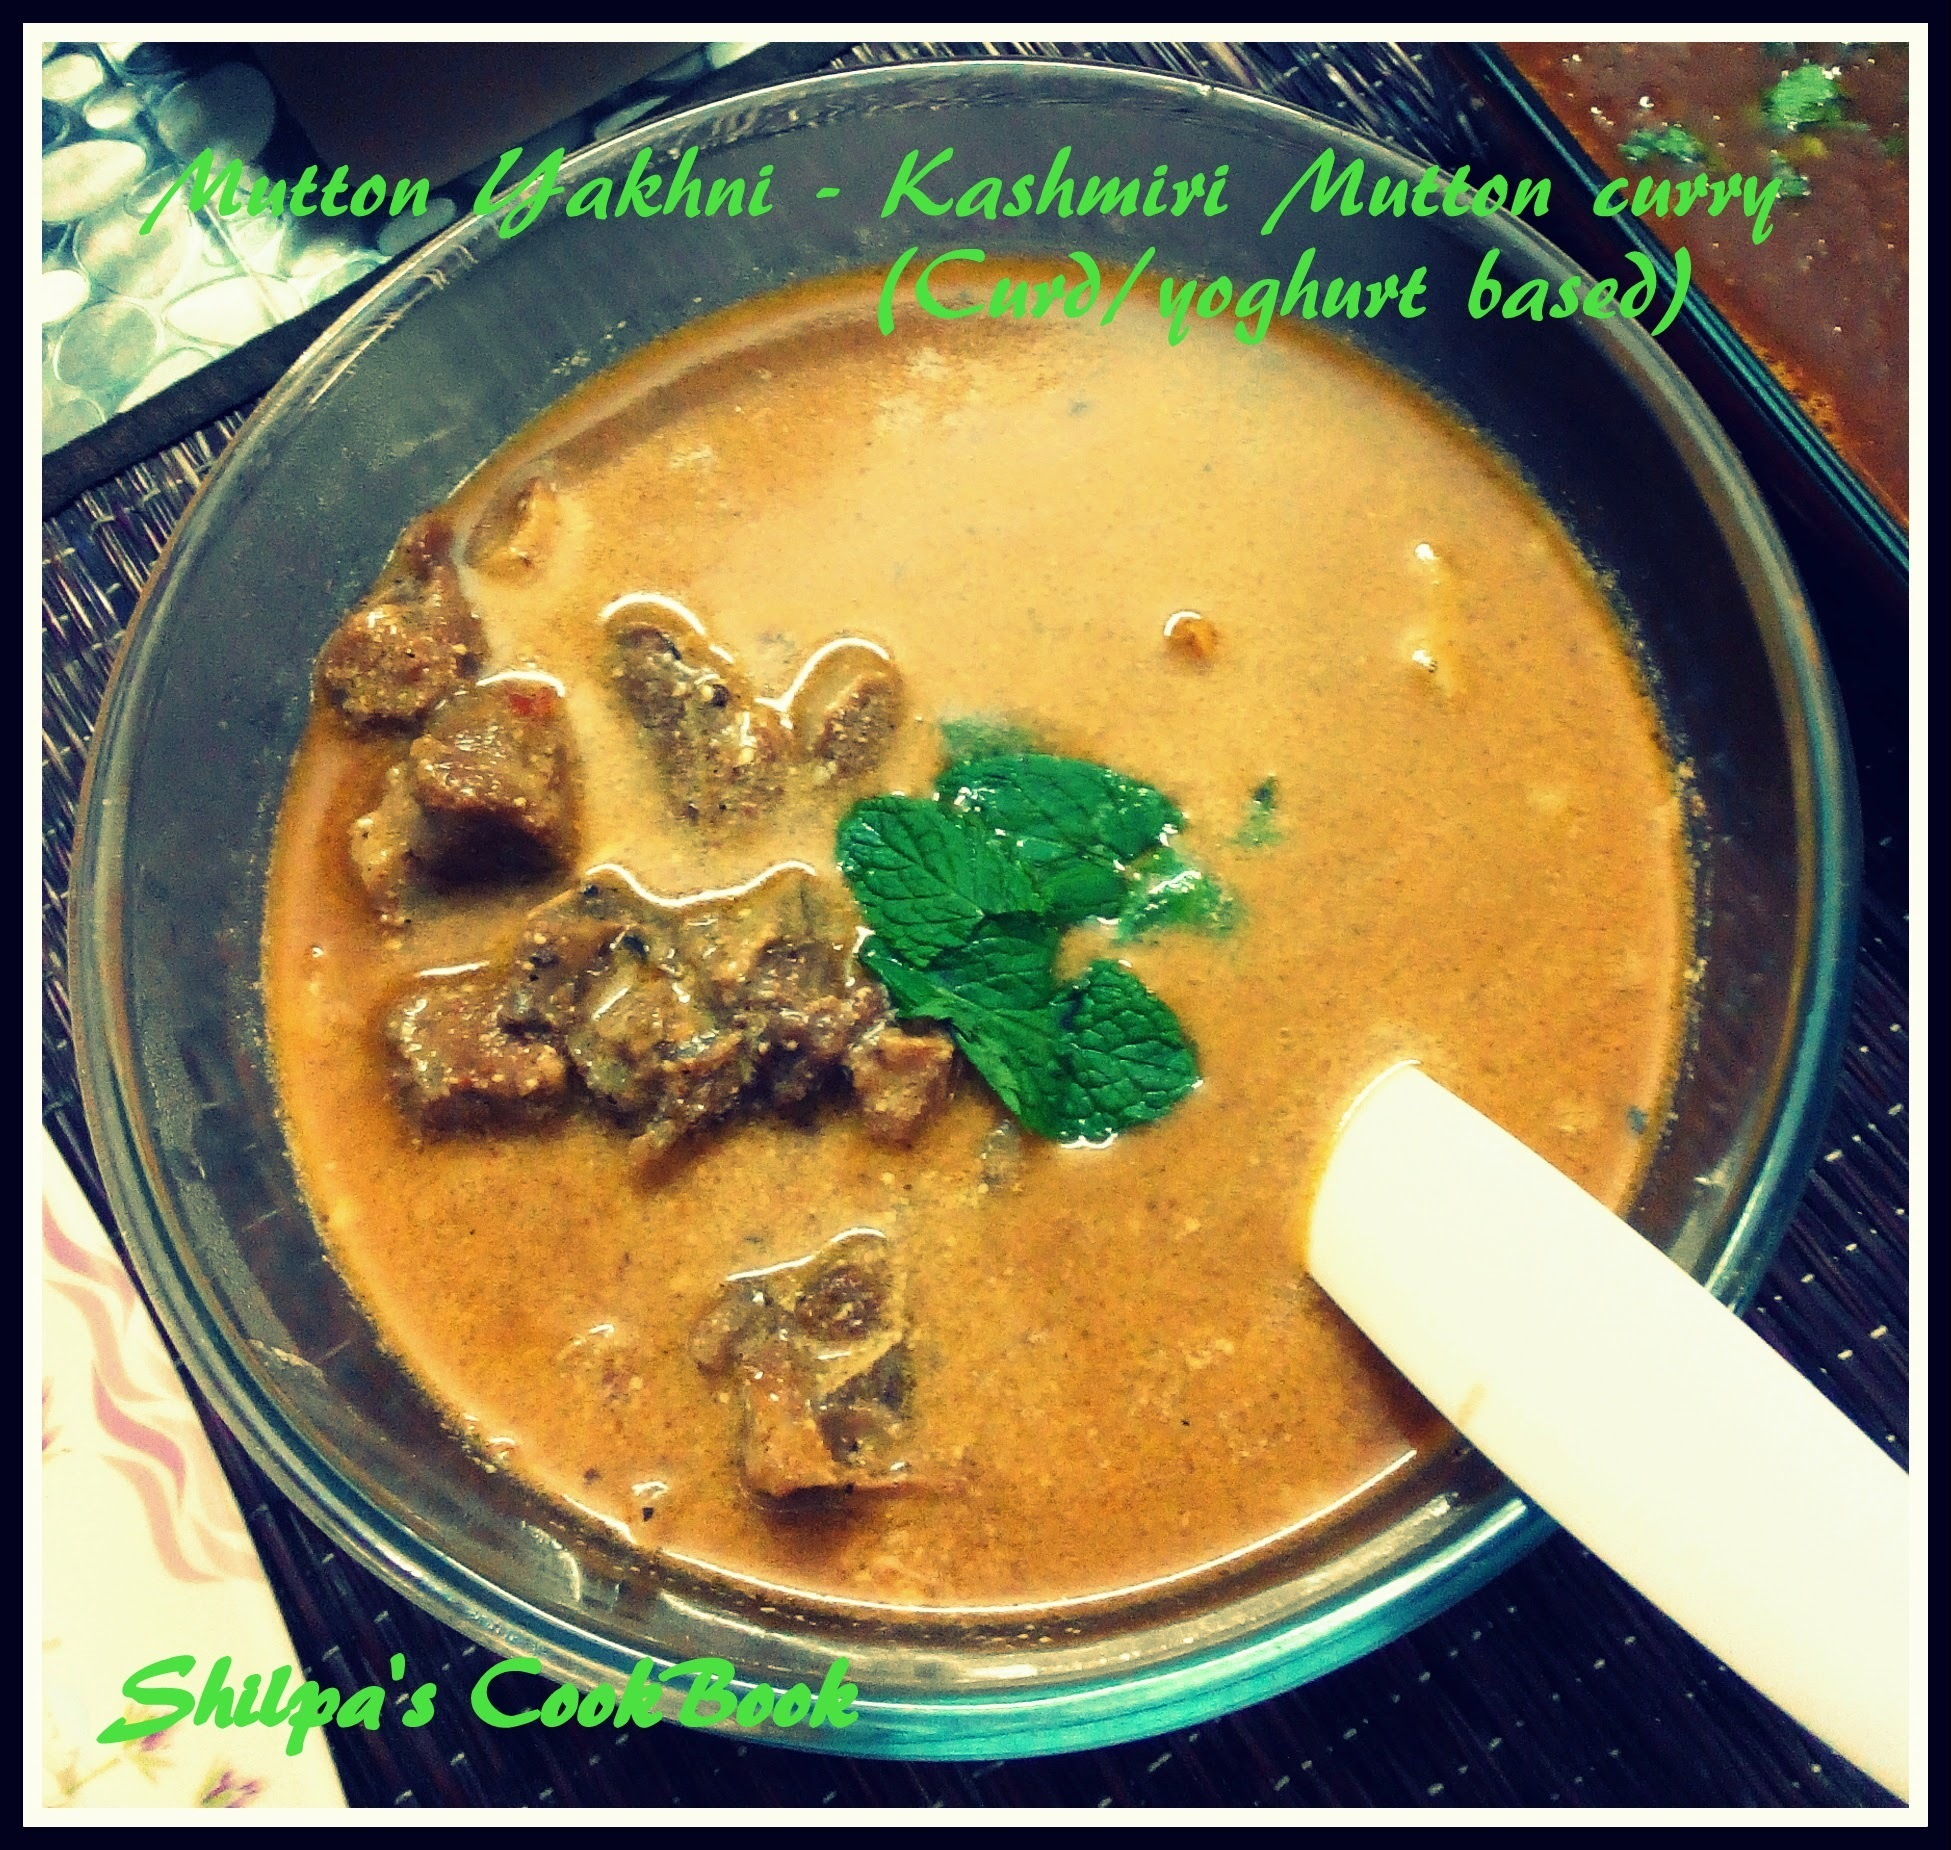 Mutton Yakhni - Kashmiri Mutton curry (prepared in Curd/yoghurt)